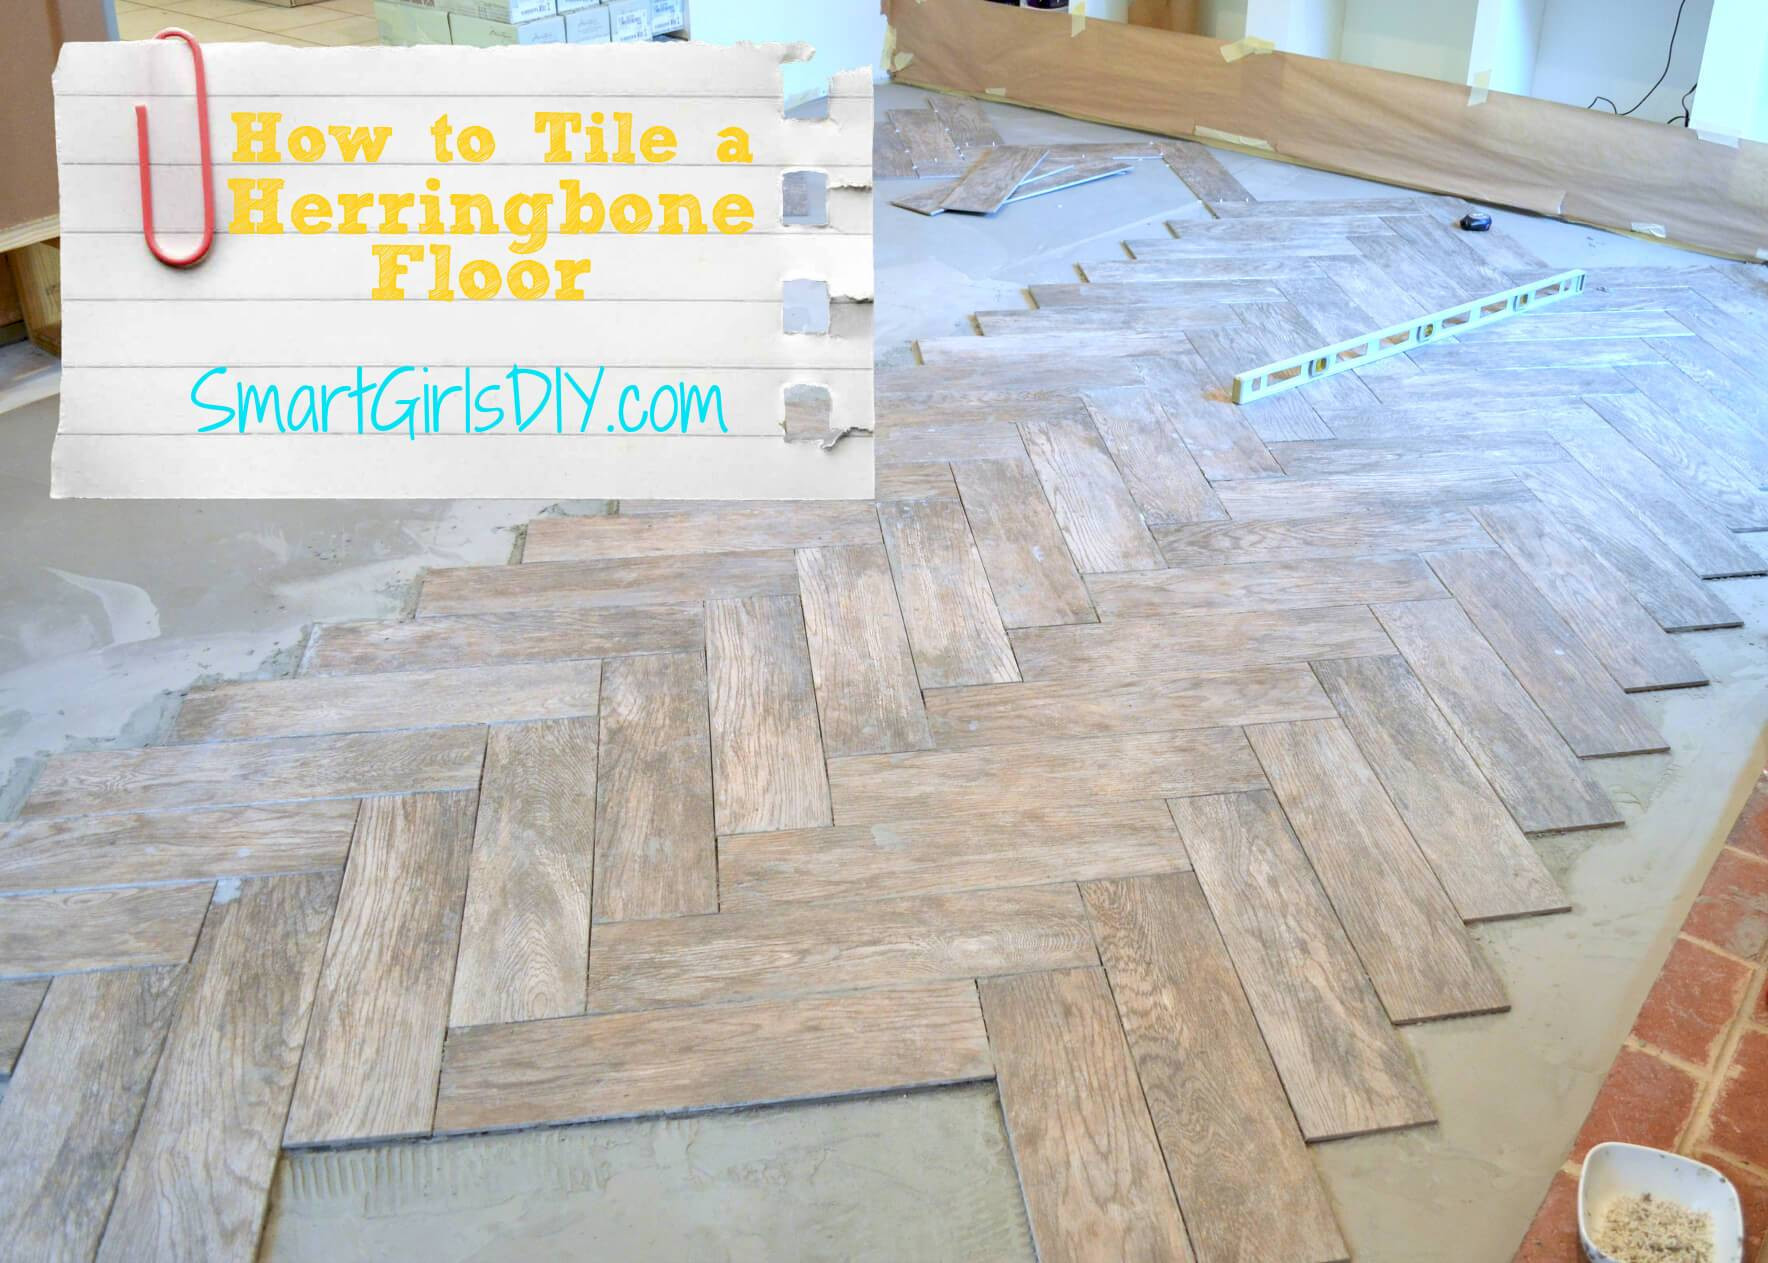 how to lay hardwood floor pattern of how to tile a herringbone floor family room 10 regarding how to tile a herringbone floor yourself